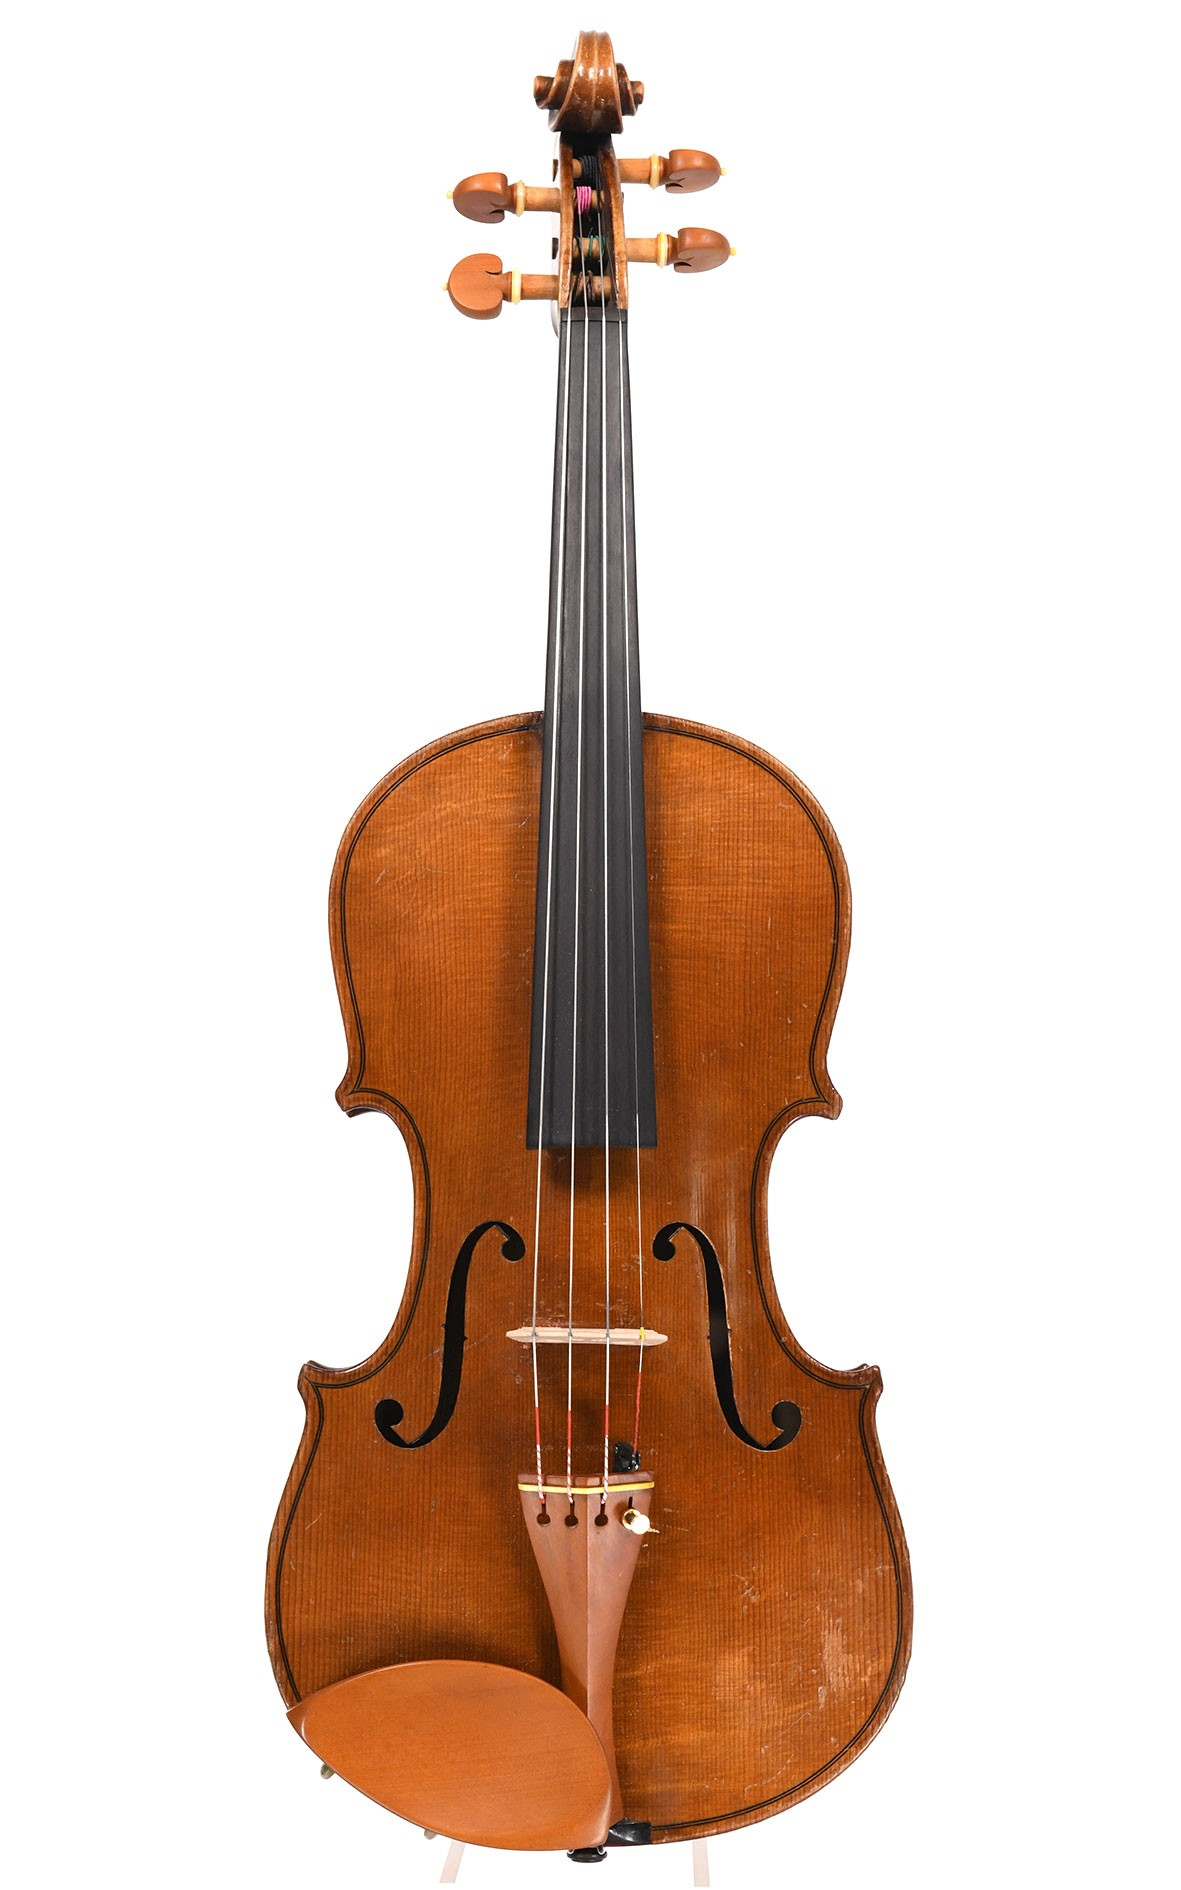 German orchestra violin, made in approximantely 1940